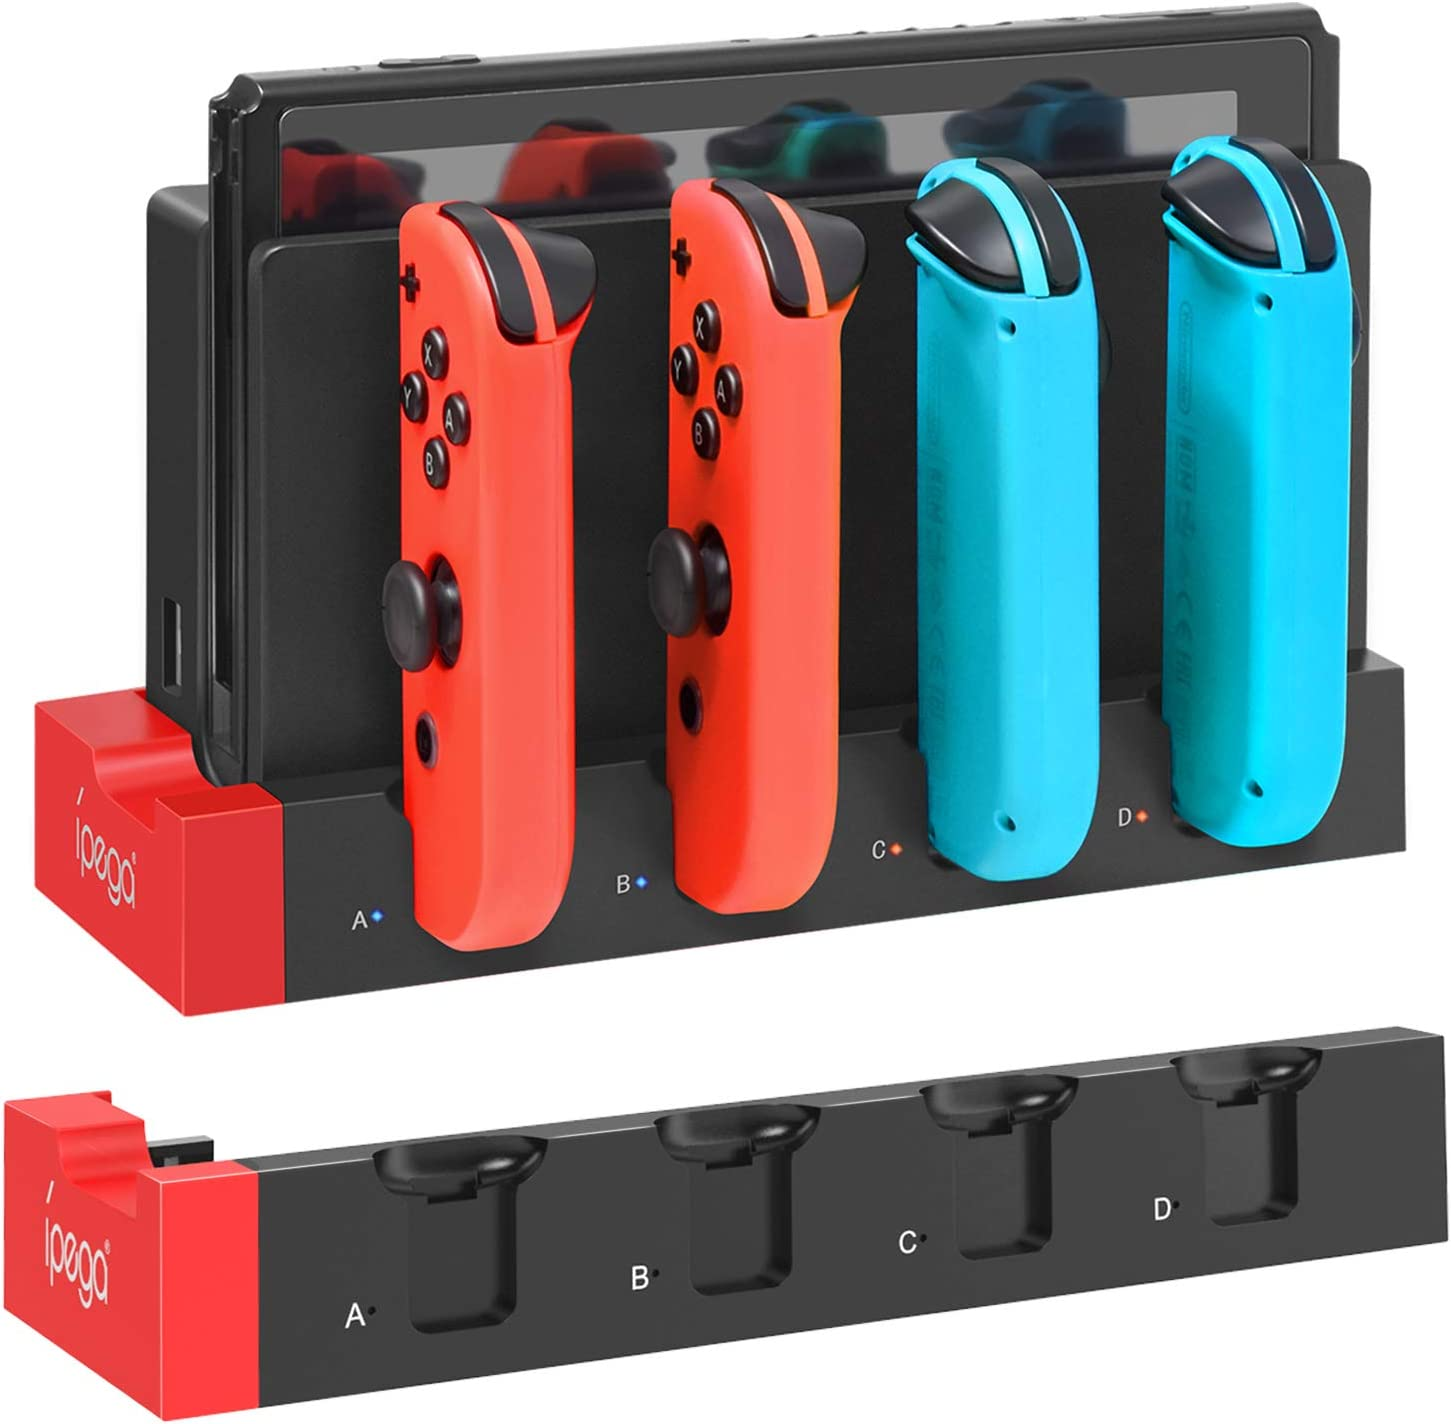 Charging Dock for Nintendo Switch Joy-Cons Controllers, [Add to Switch Dock] Portable Desktop Charging Station Stand with Extended USB Port - Black/Red